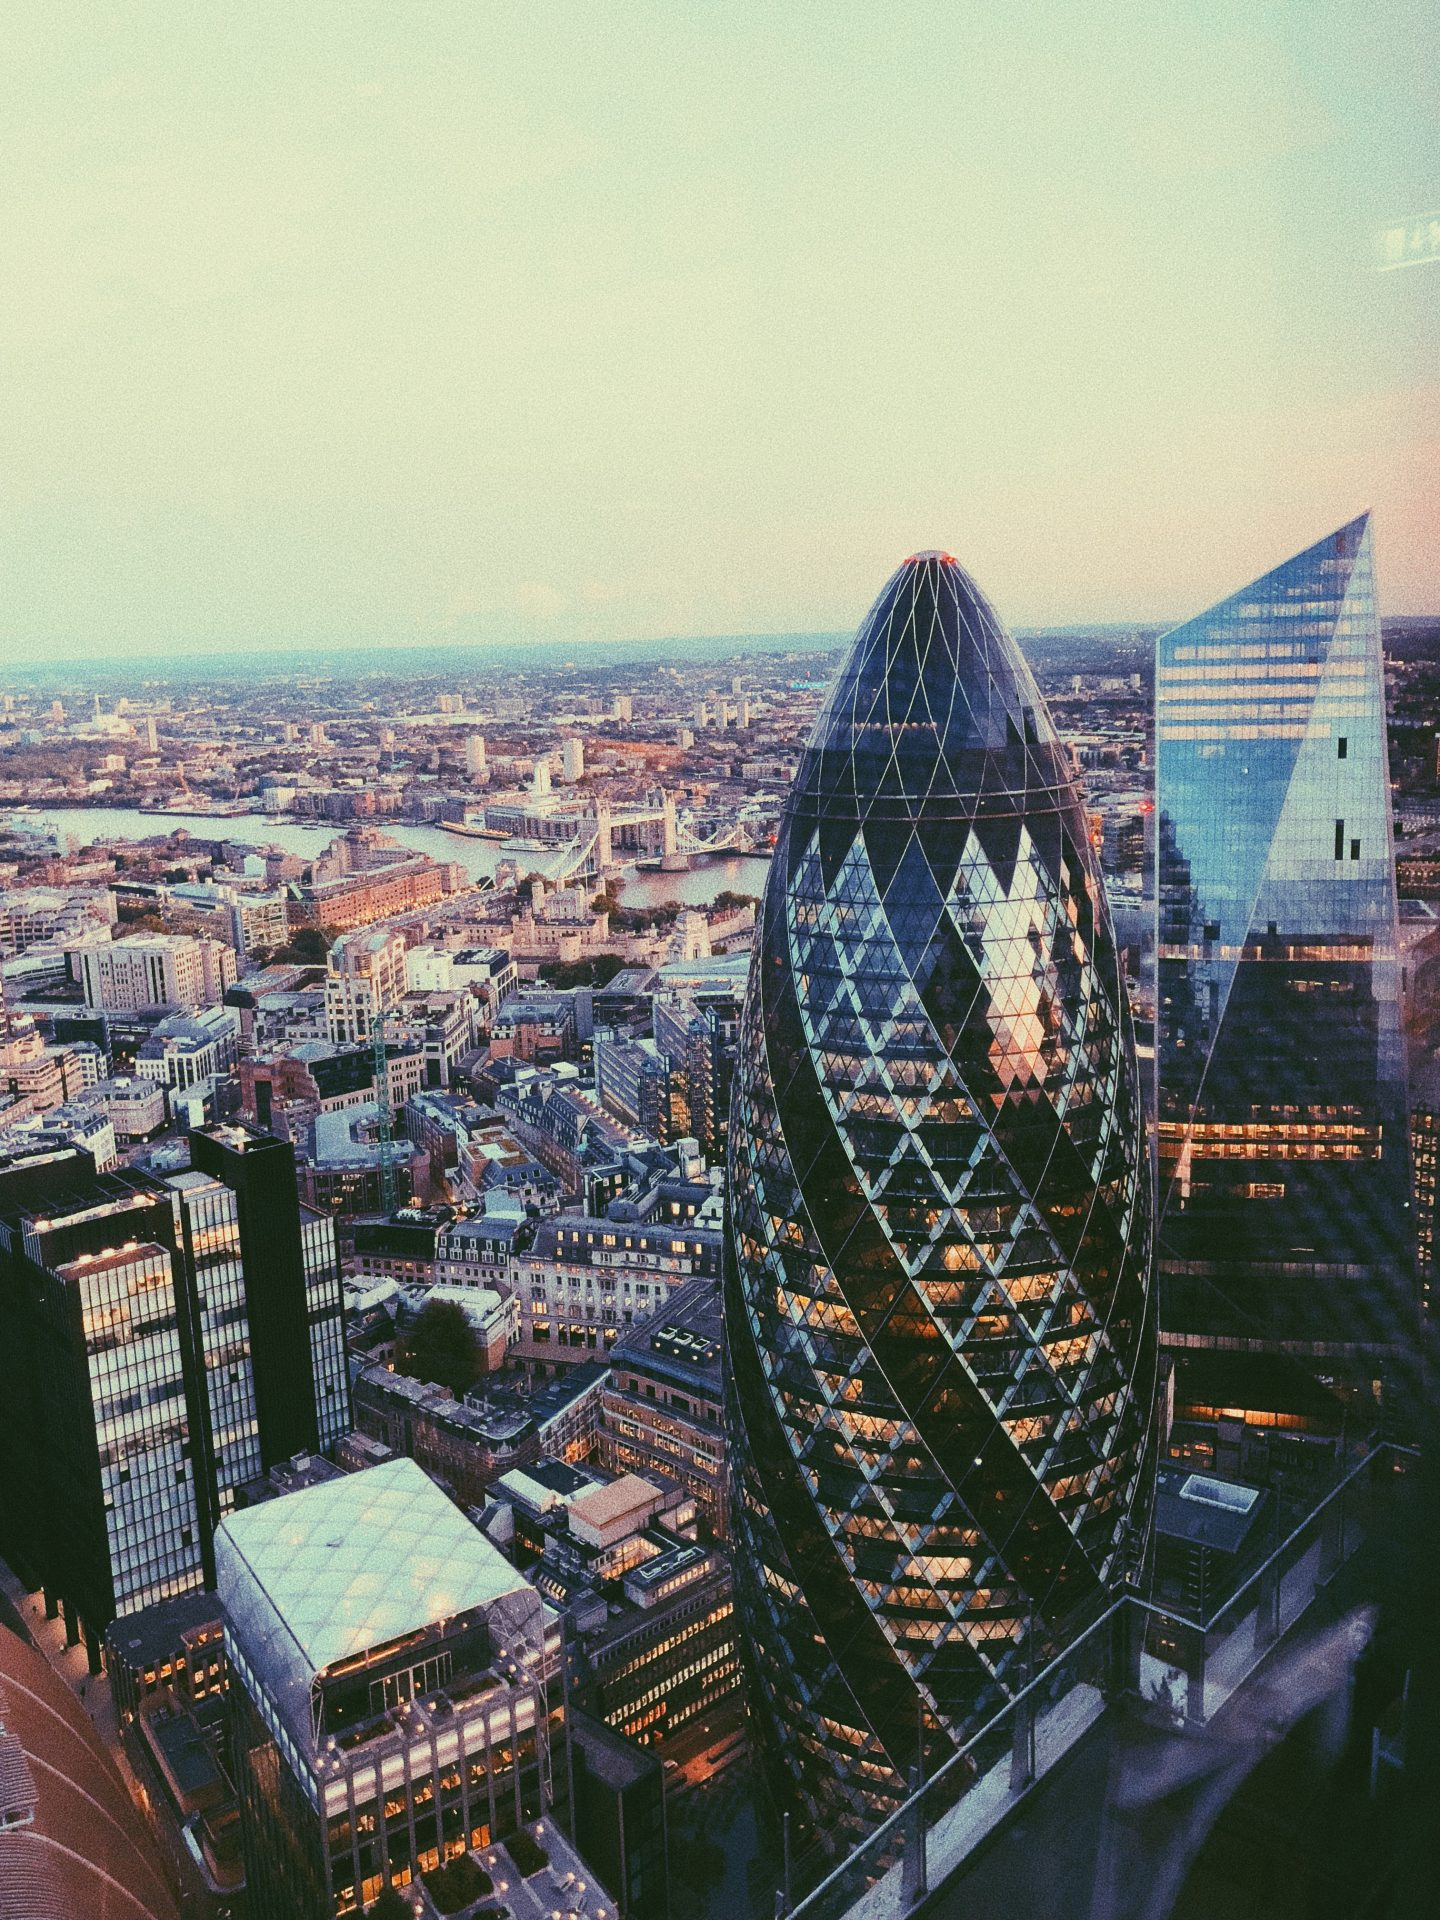 London duck and waffle